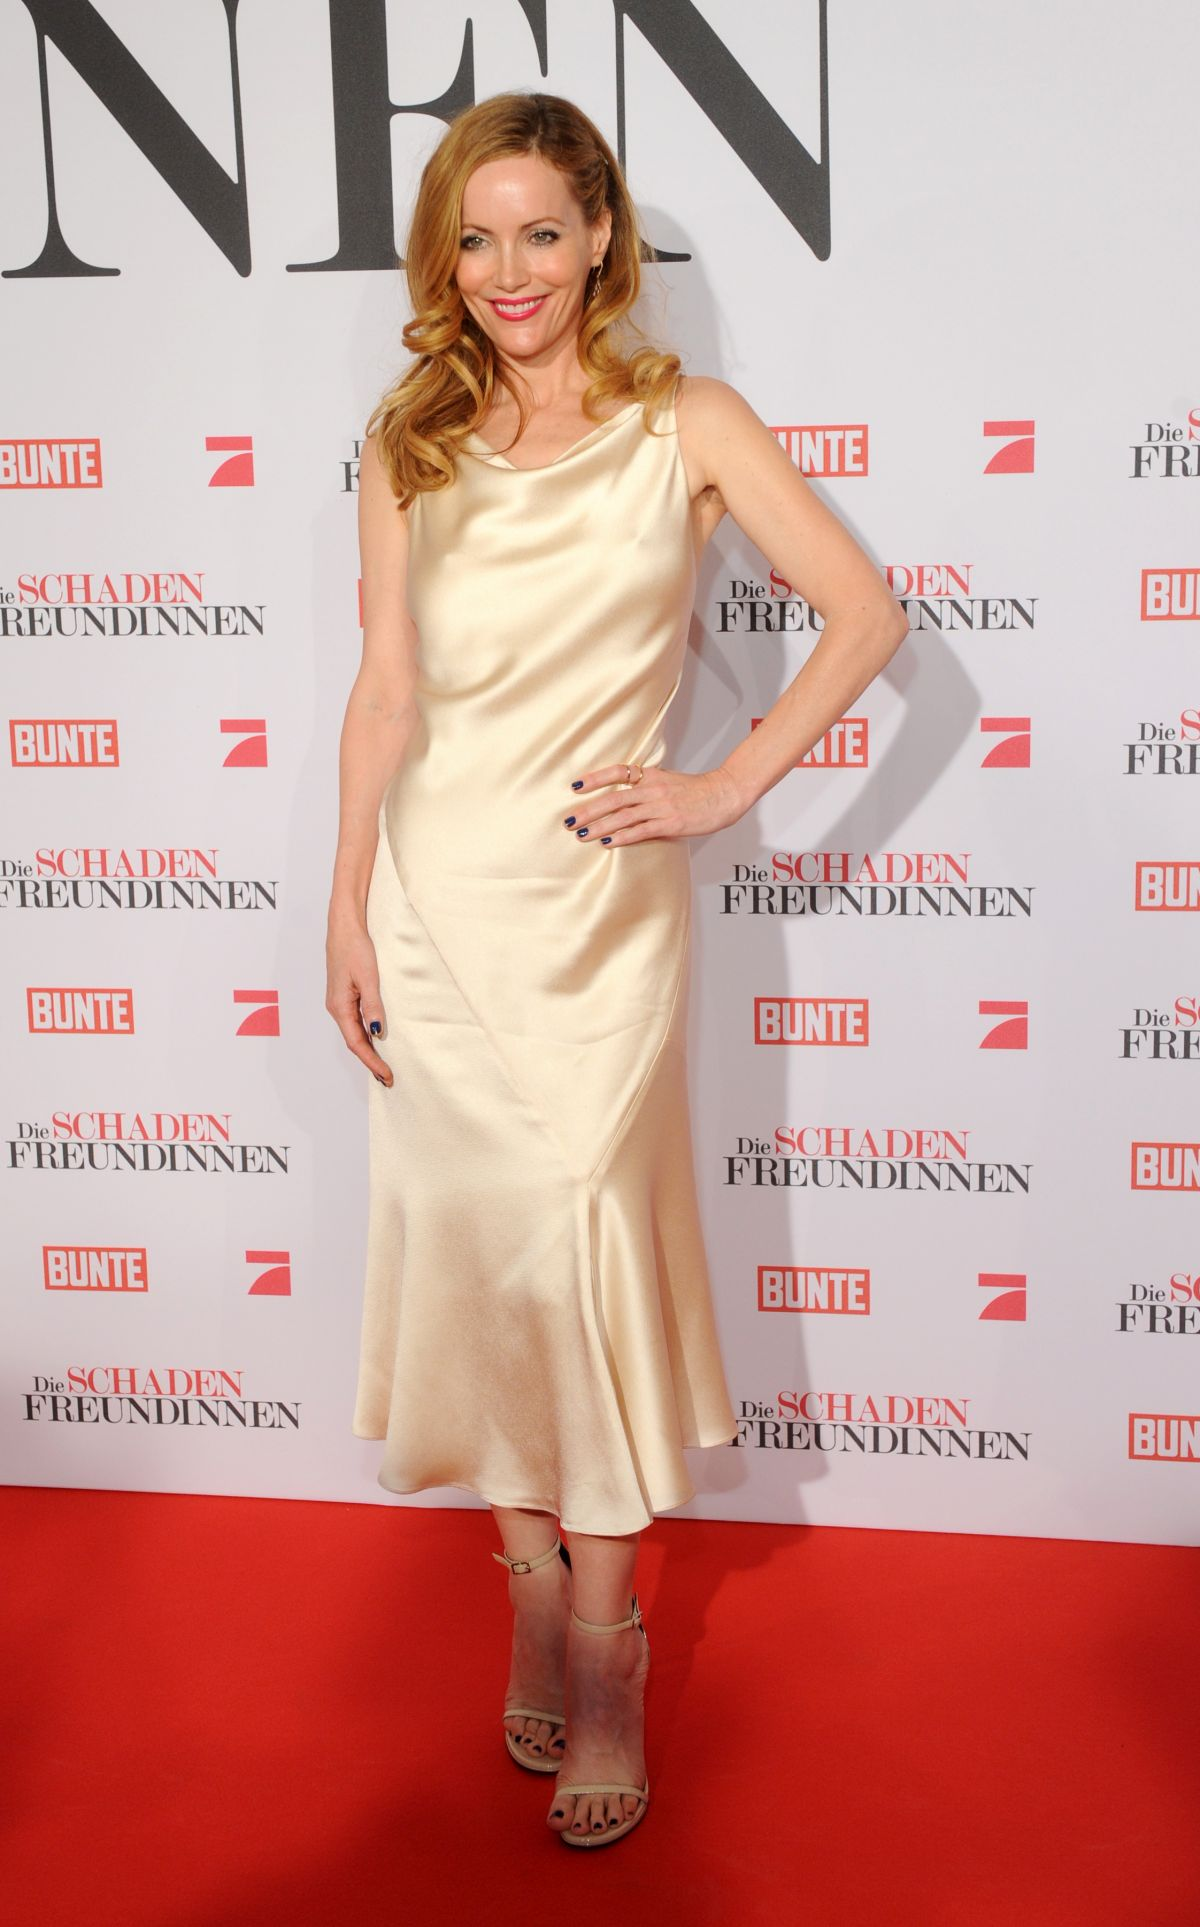 Leslie Mann At The Other Woman Premiere In Munich Hawtcelebs